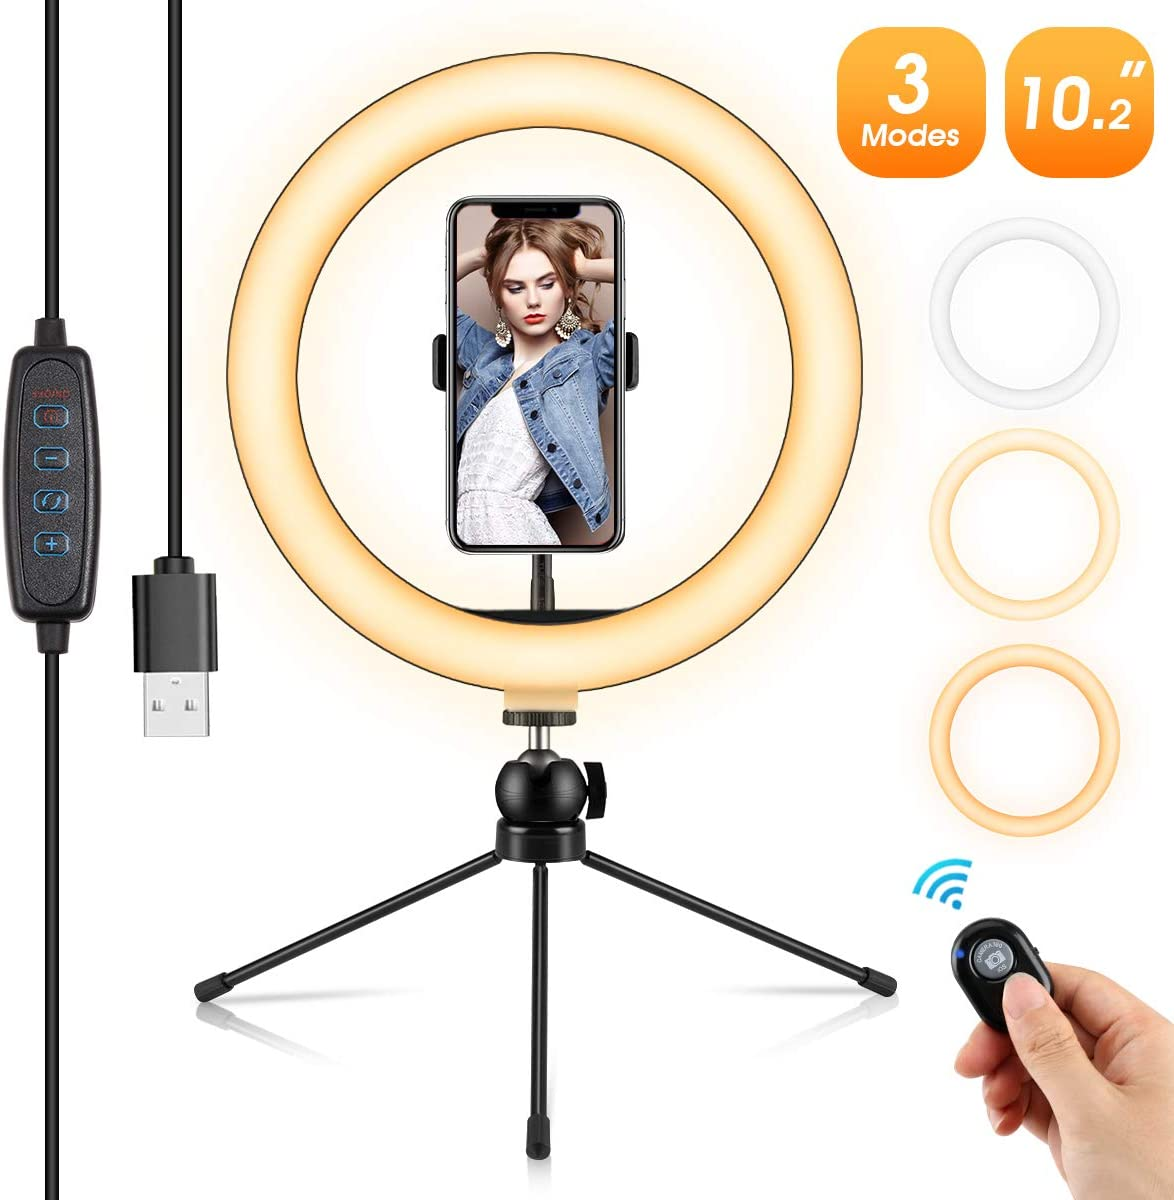 "10.2"" Ring Light, Selfie Ring Light with Tripod Stand and Phone Holder, 3 Light Modes &10 Brightness 120 Bulbs Dimmable Ring Light for YouTube Video/Live Stream/Makeup/Photography"